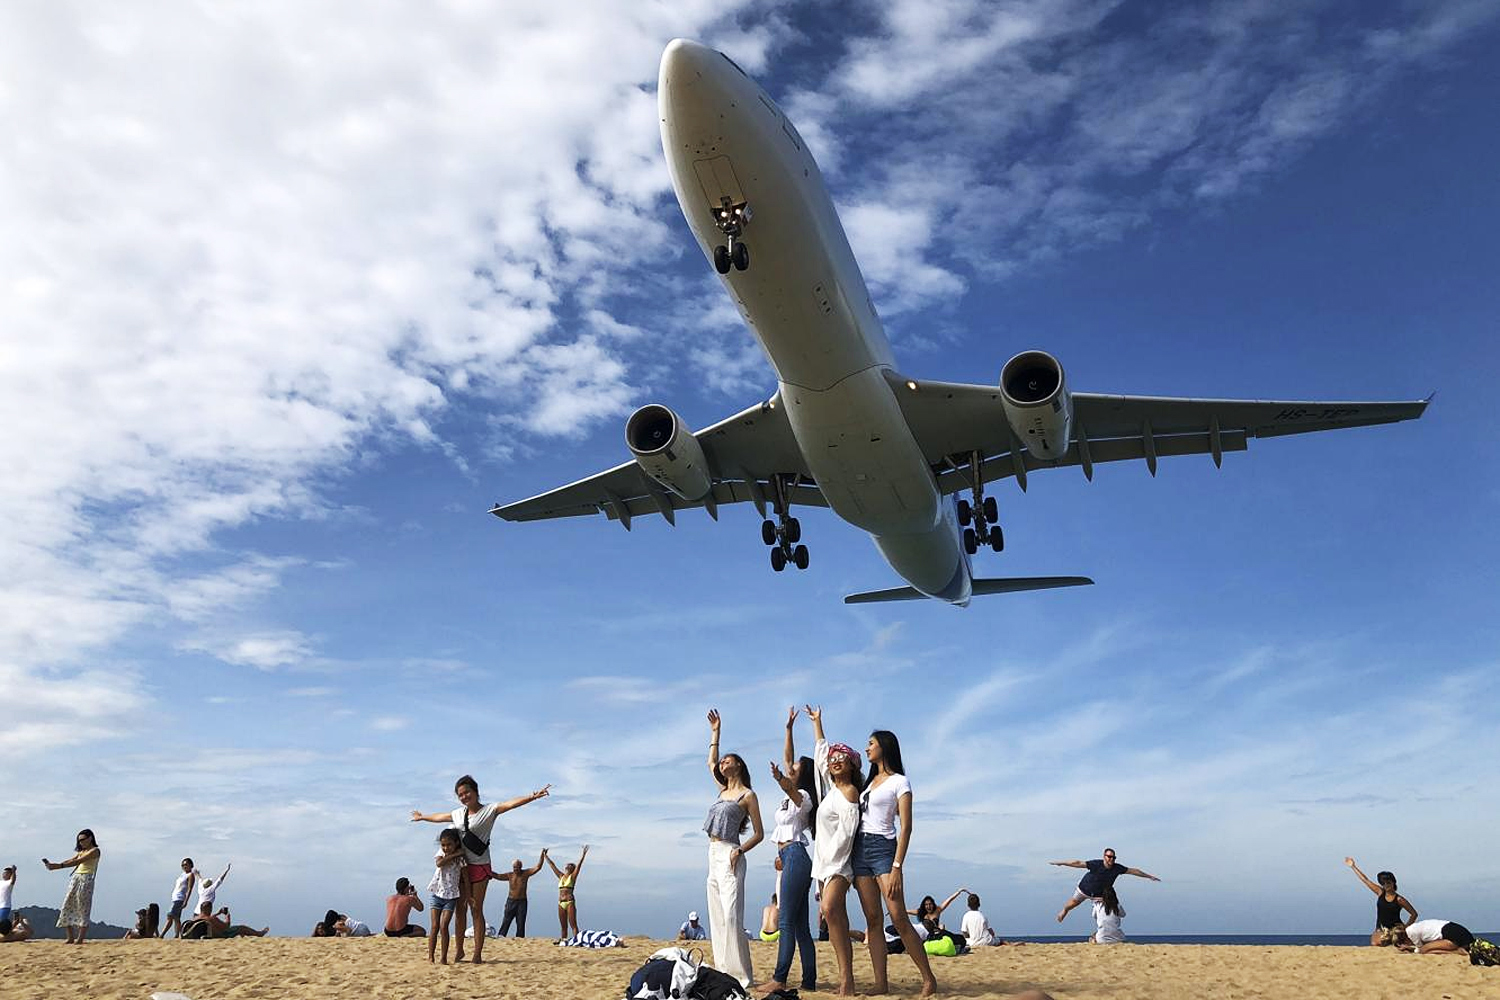 Tourists on Mai Khao beach pose for a picture as a jet comes in to land at Phuket International Airport. The beach is a popular destination for tourists looking to snap selfies as the planes approach directly overhead.(Photo by Sarot Meksophawannakul)